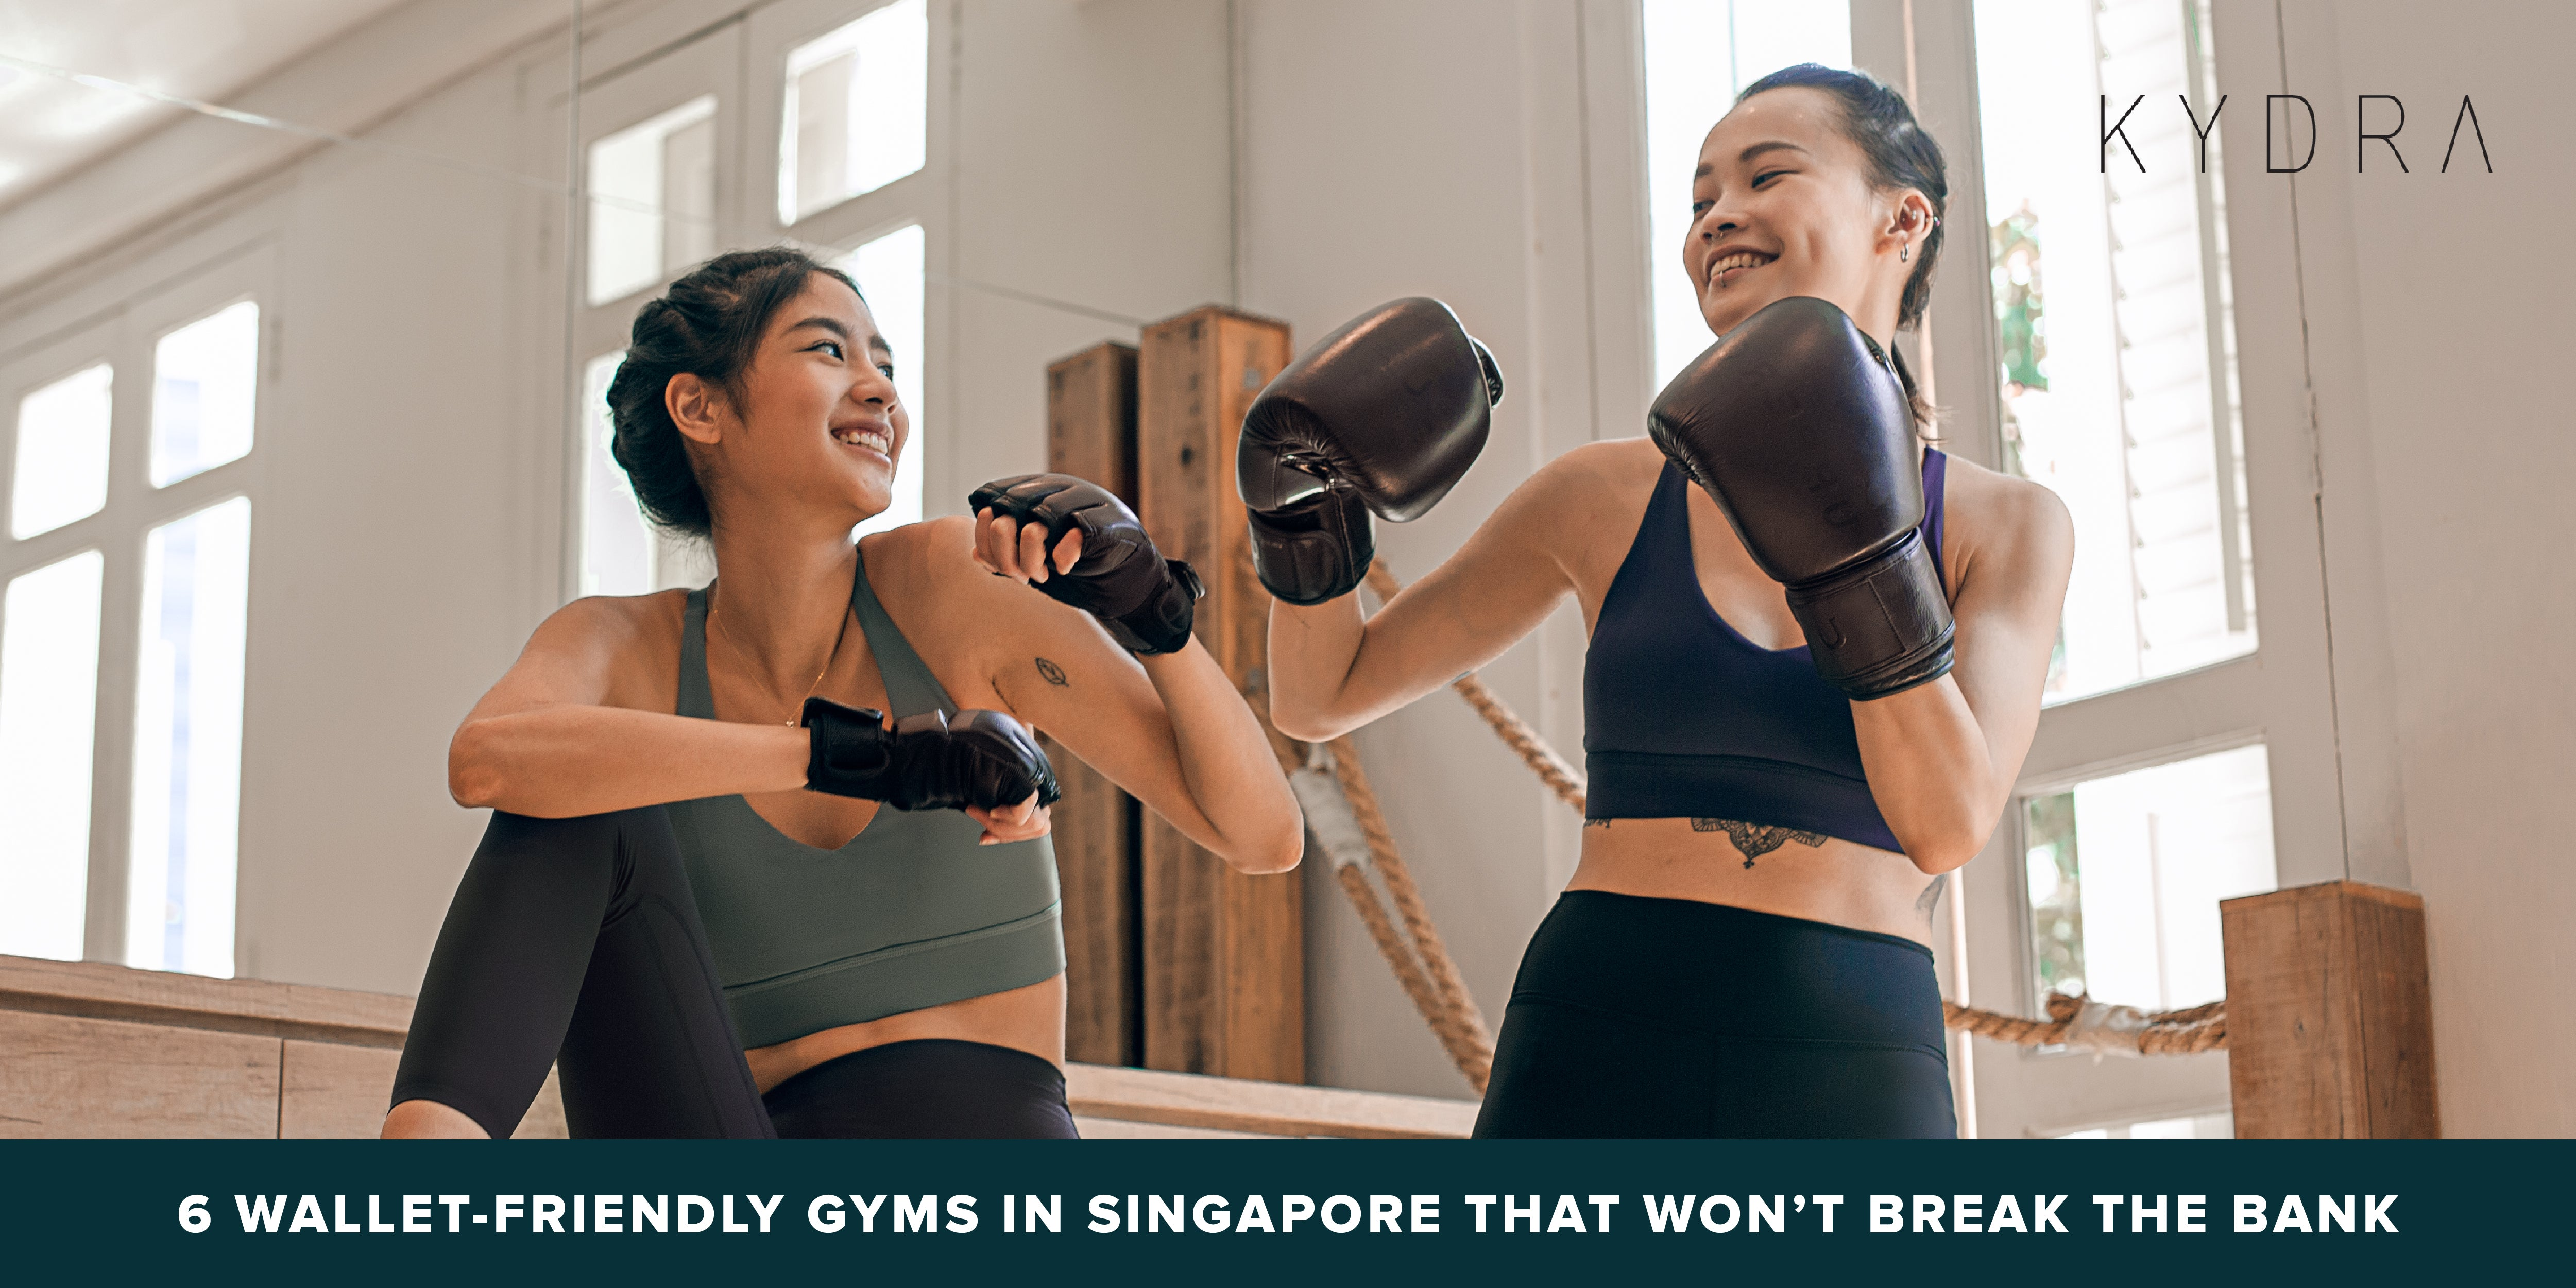 6 Wallet-Friendly Gyms In Singapore That Won't Break The Bank